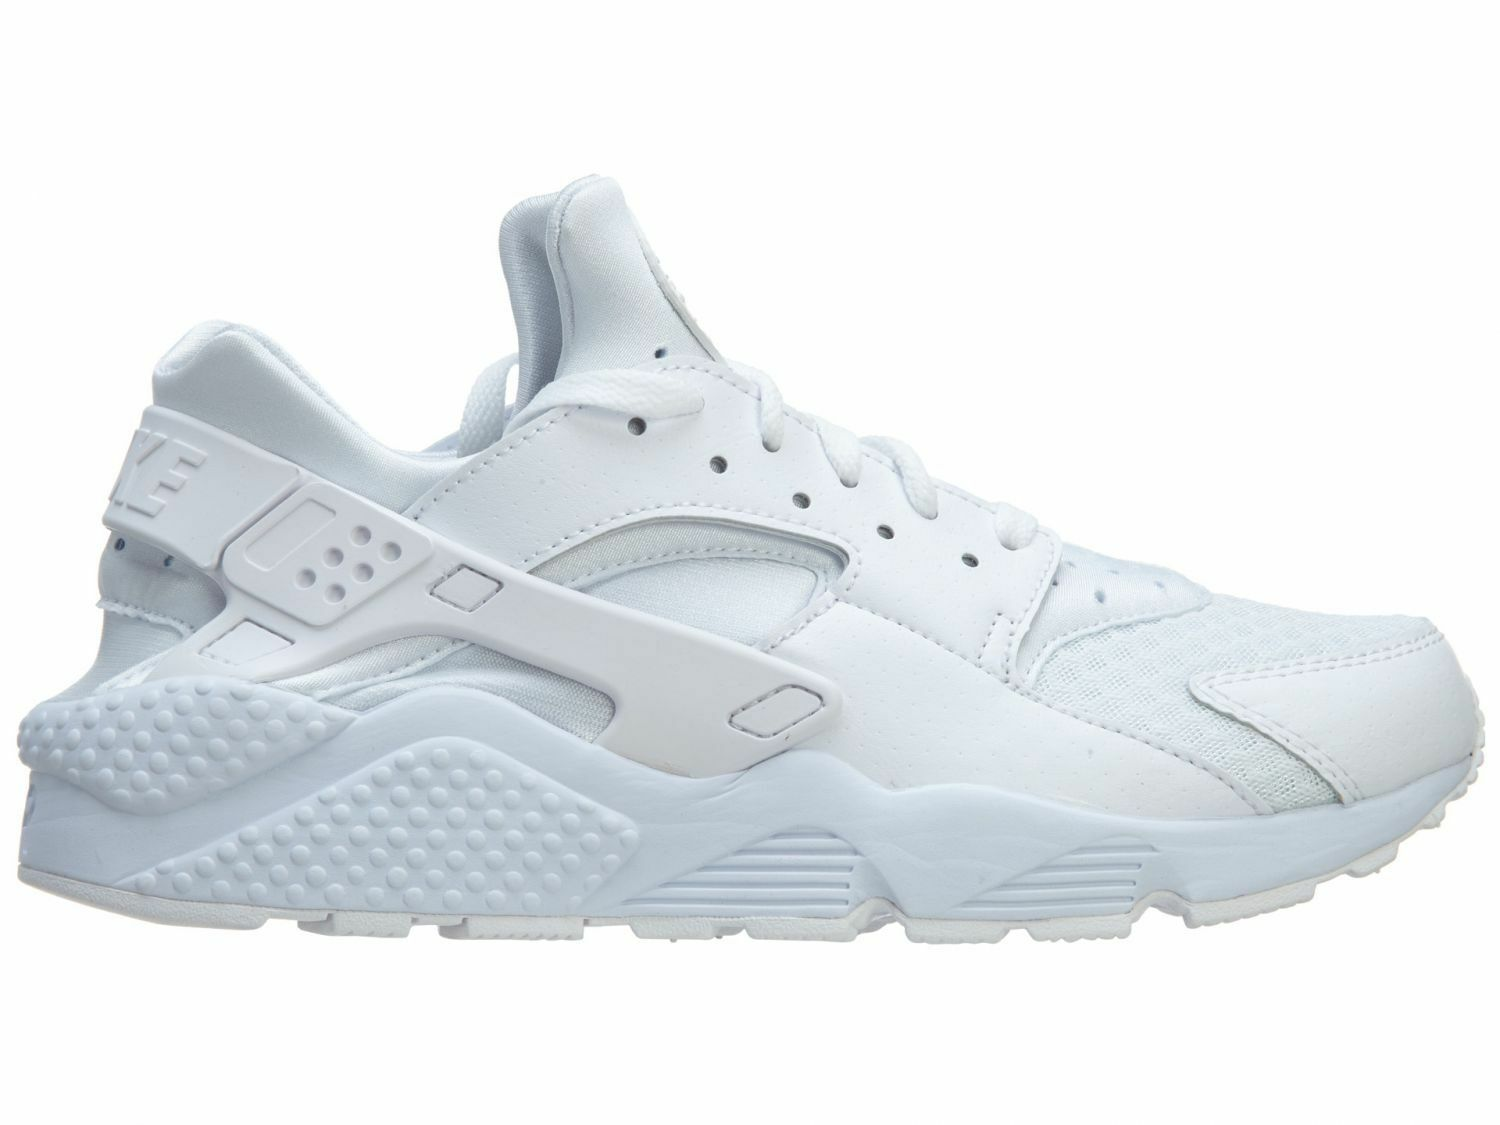 Nike Air Huarache Mens 318429-111 White Pure Platinum Running Shoes Size 11.5